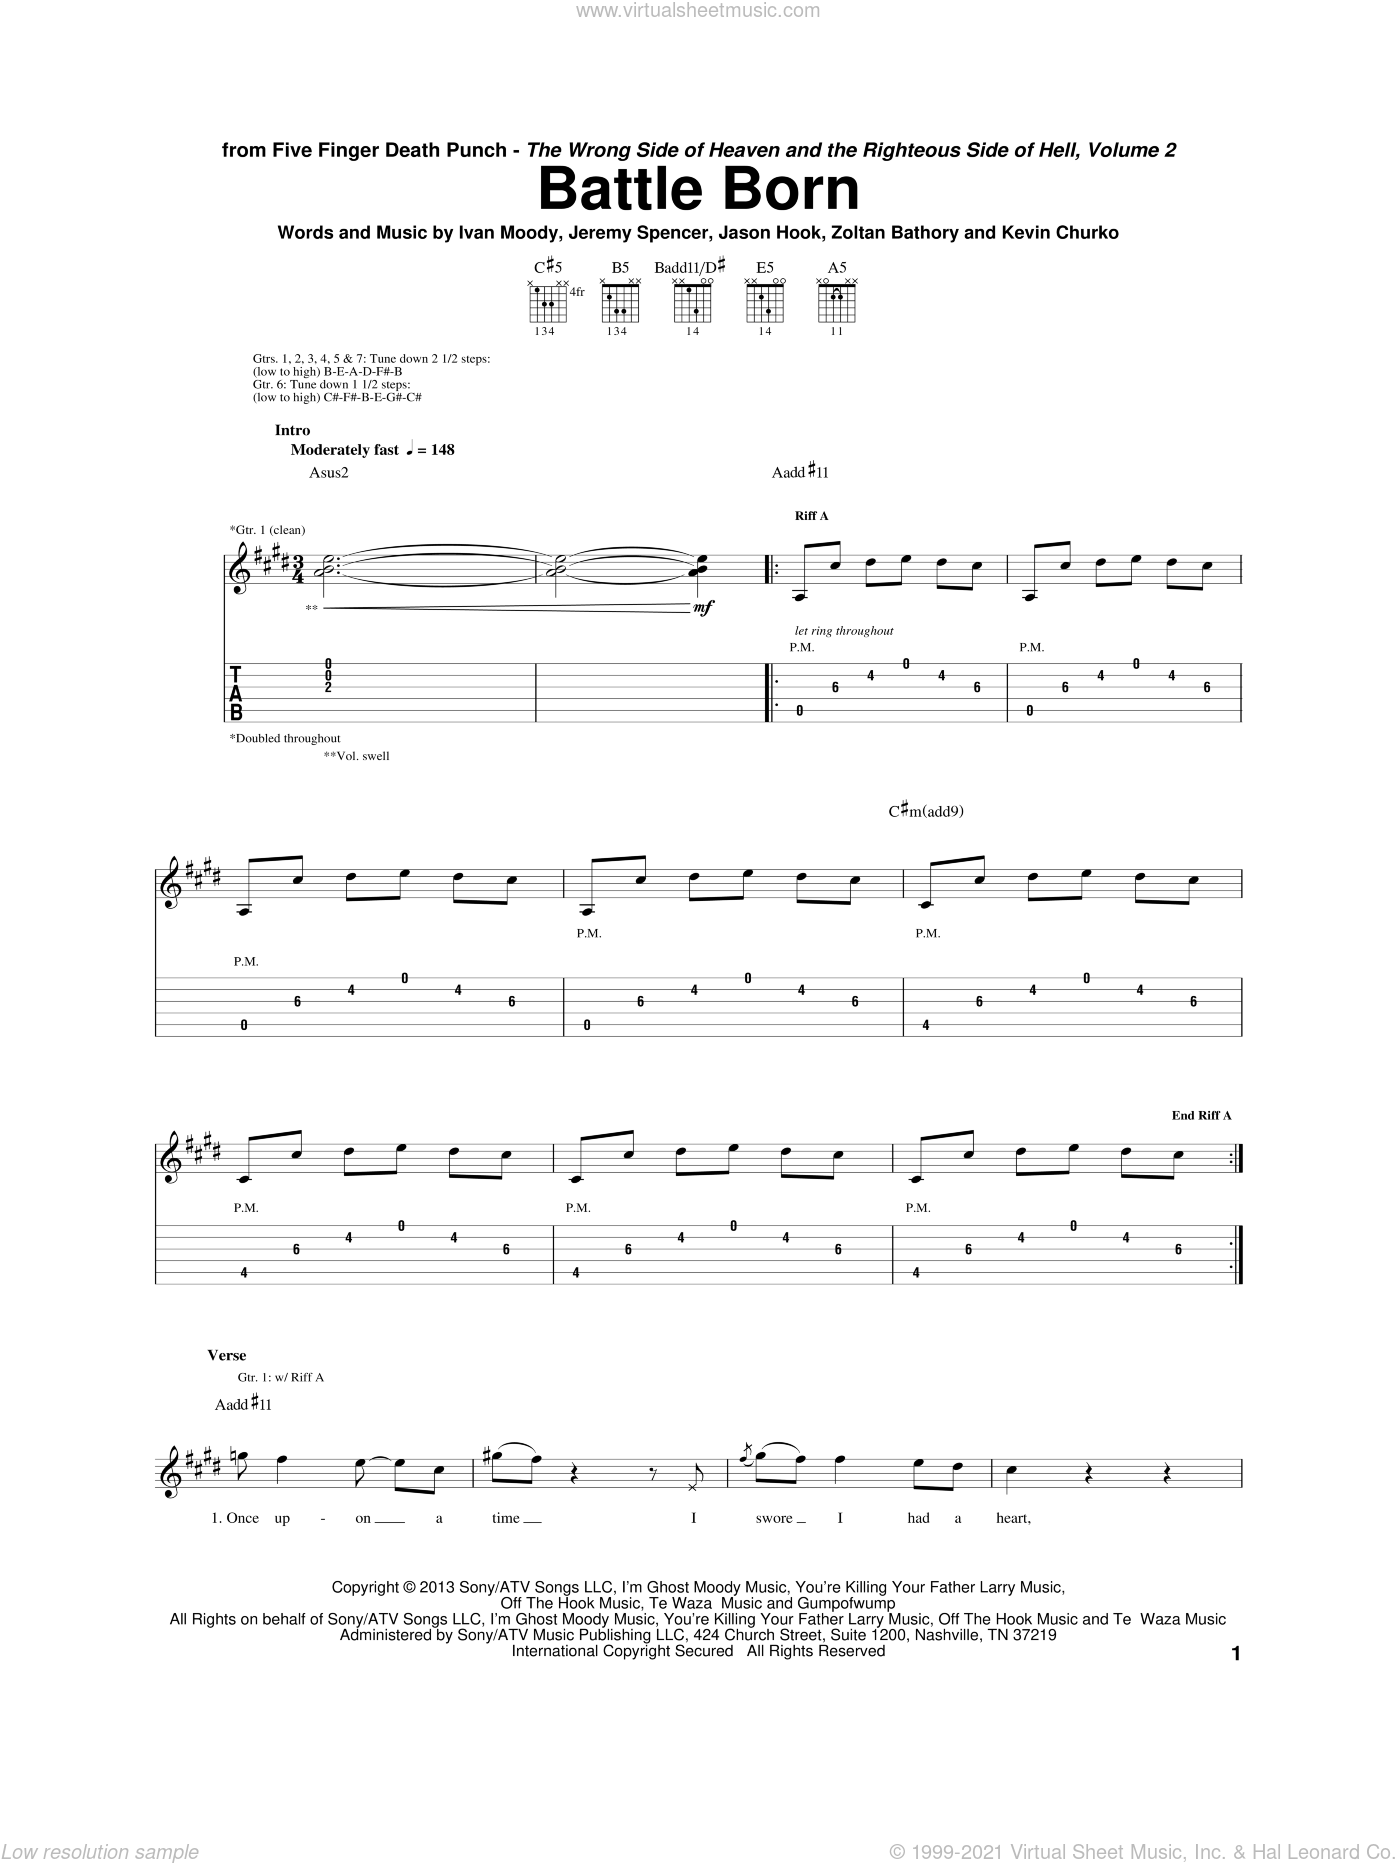 Battle Born sheet music for guitar (tablature) by Five Finger Death Punch. Score Image Preview.